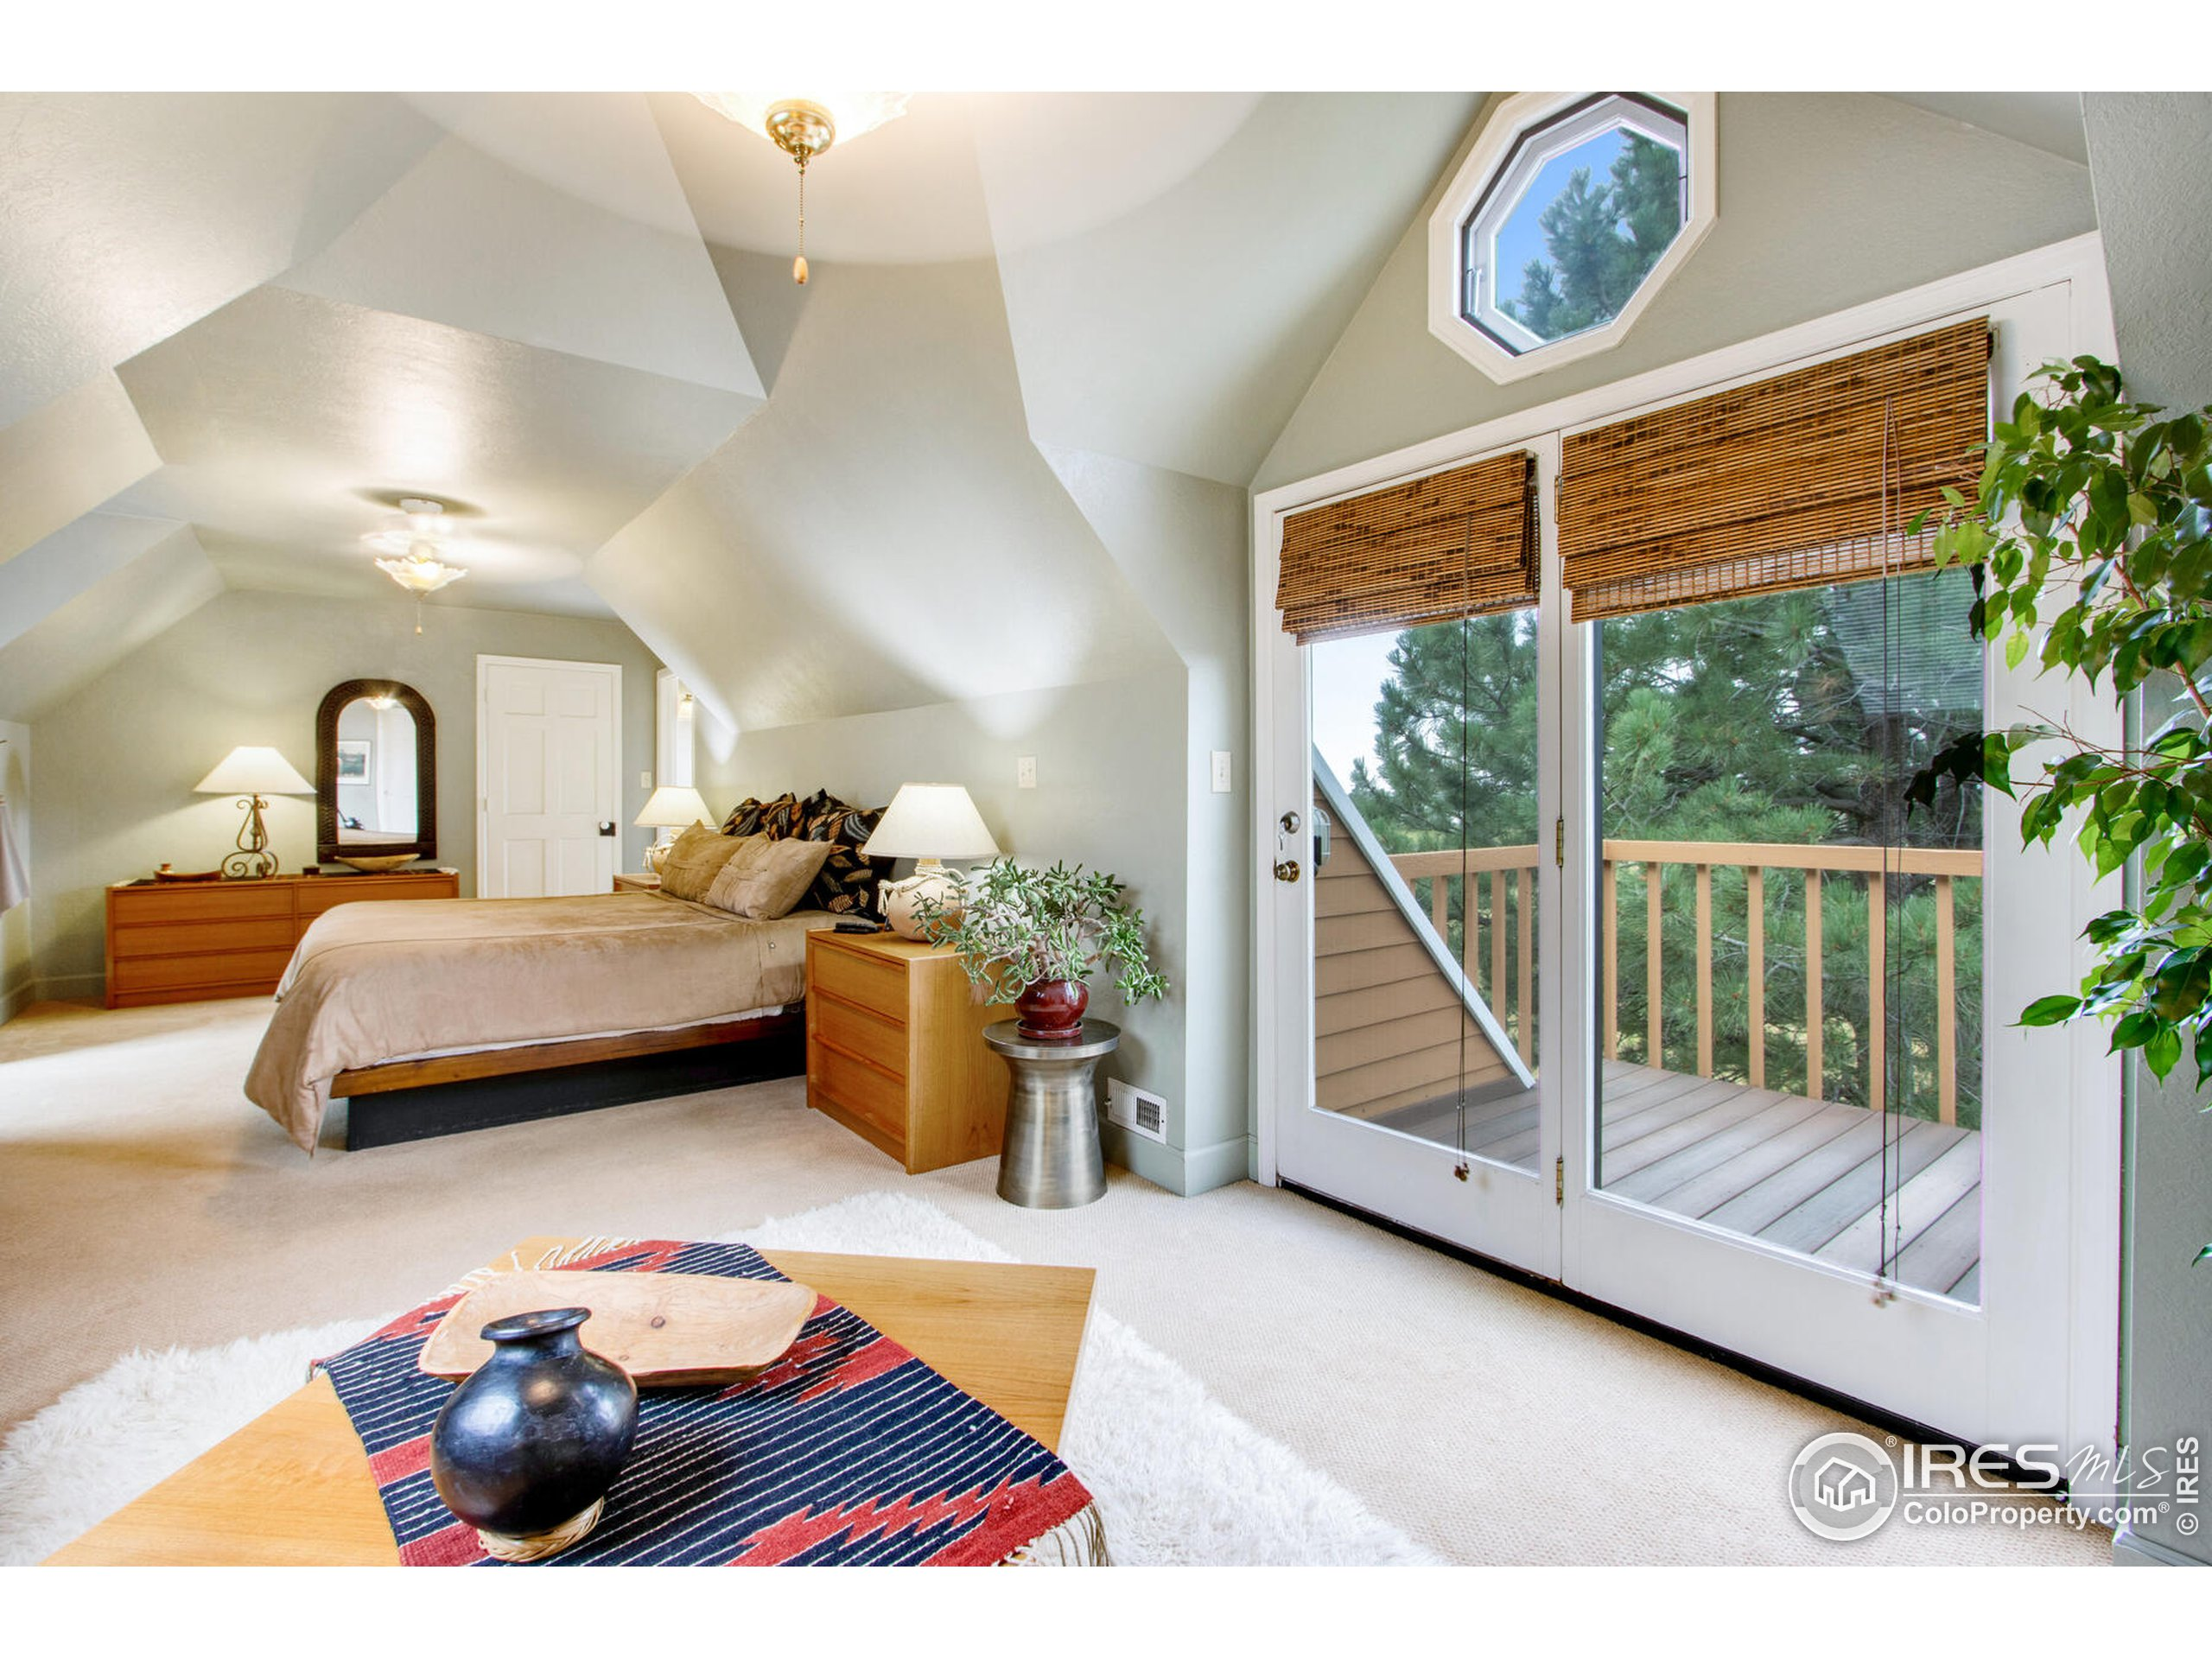 29 X 11 expansive Master Suite with multiple walk-in closets (don't miss the secret room) and its own veranda or evening deck to take in the amazing mountain views!